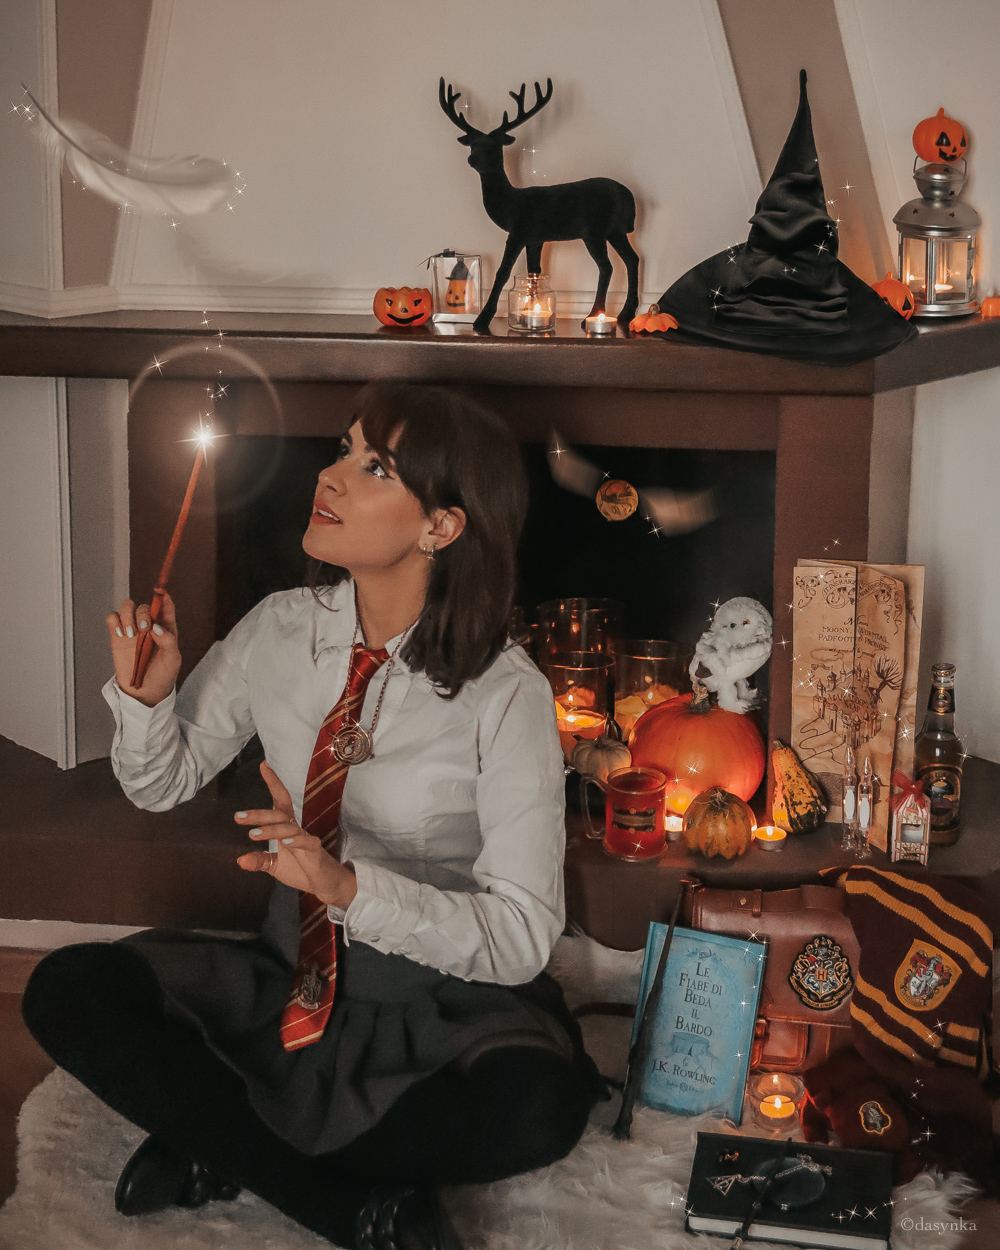 dasynka-fashion-blogger-blog-cosplay-cosplayer-disney-disneyland-halloween-make-up-costume-ideas-death-party-decorations-costumes-witch-harry-potter-hogwarts-aragog-forbidden-forest-dementor-voldemort-you-know-who-gryffindor-lumos-maxima-death-eater-wand-marauders-map-hedwig-sorting-hat-beedle-the-bard-pensieve-horcrux-deathly-hallows